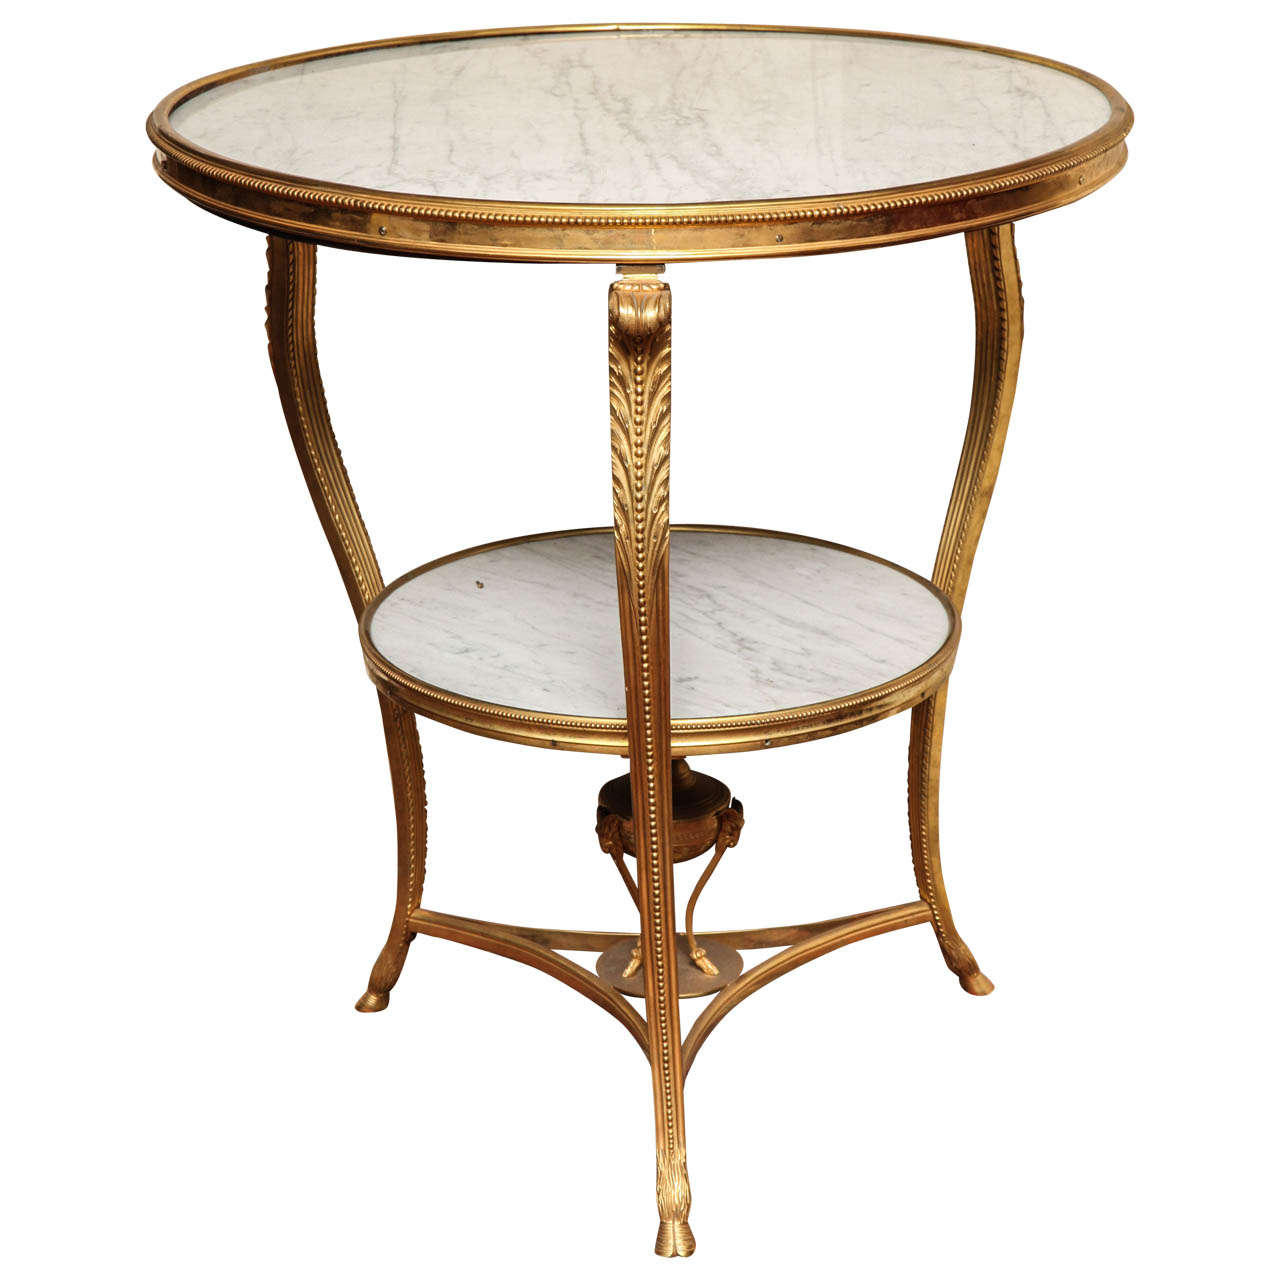 Neoclassical Louis XVI Style Circular Marble and Bronze Two-Tier Centre Table